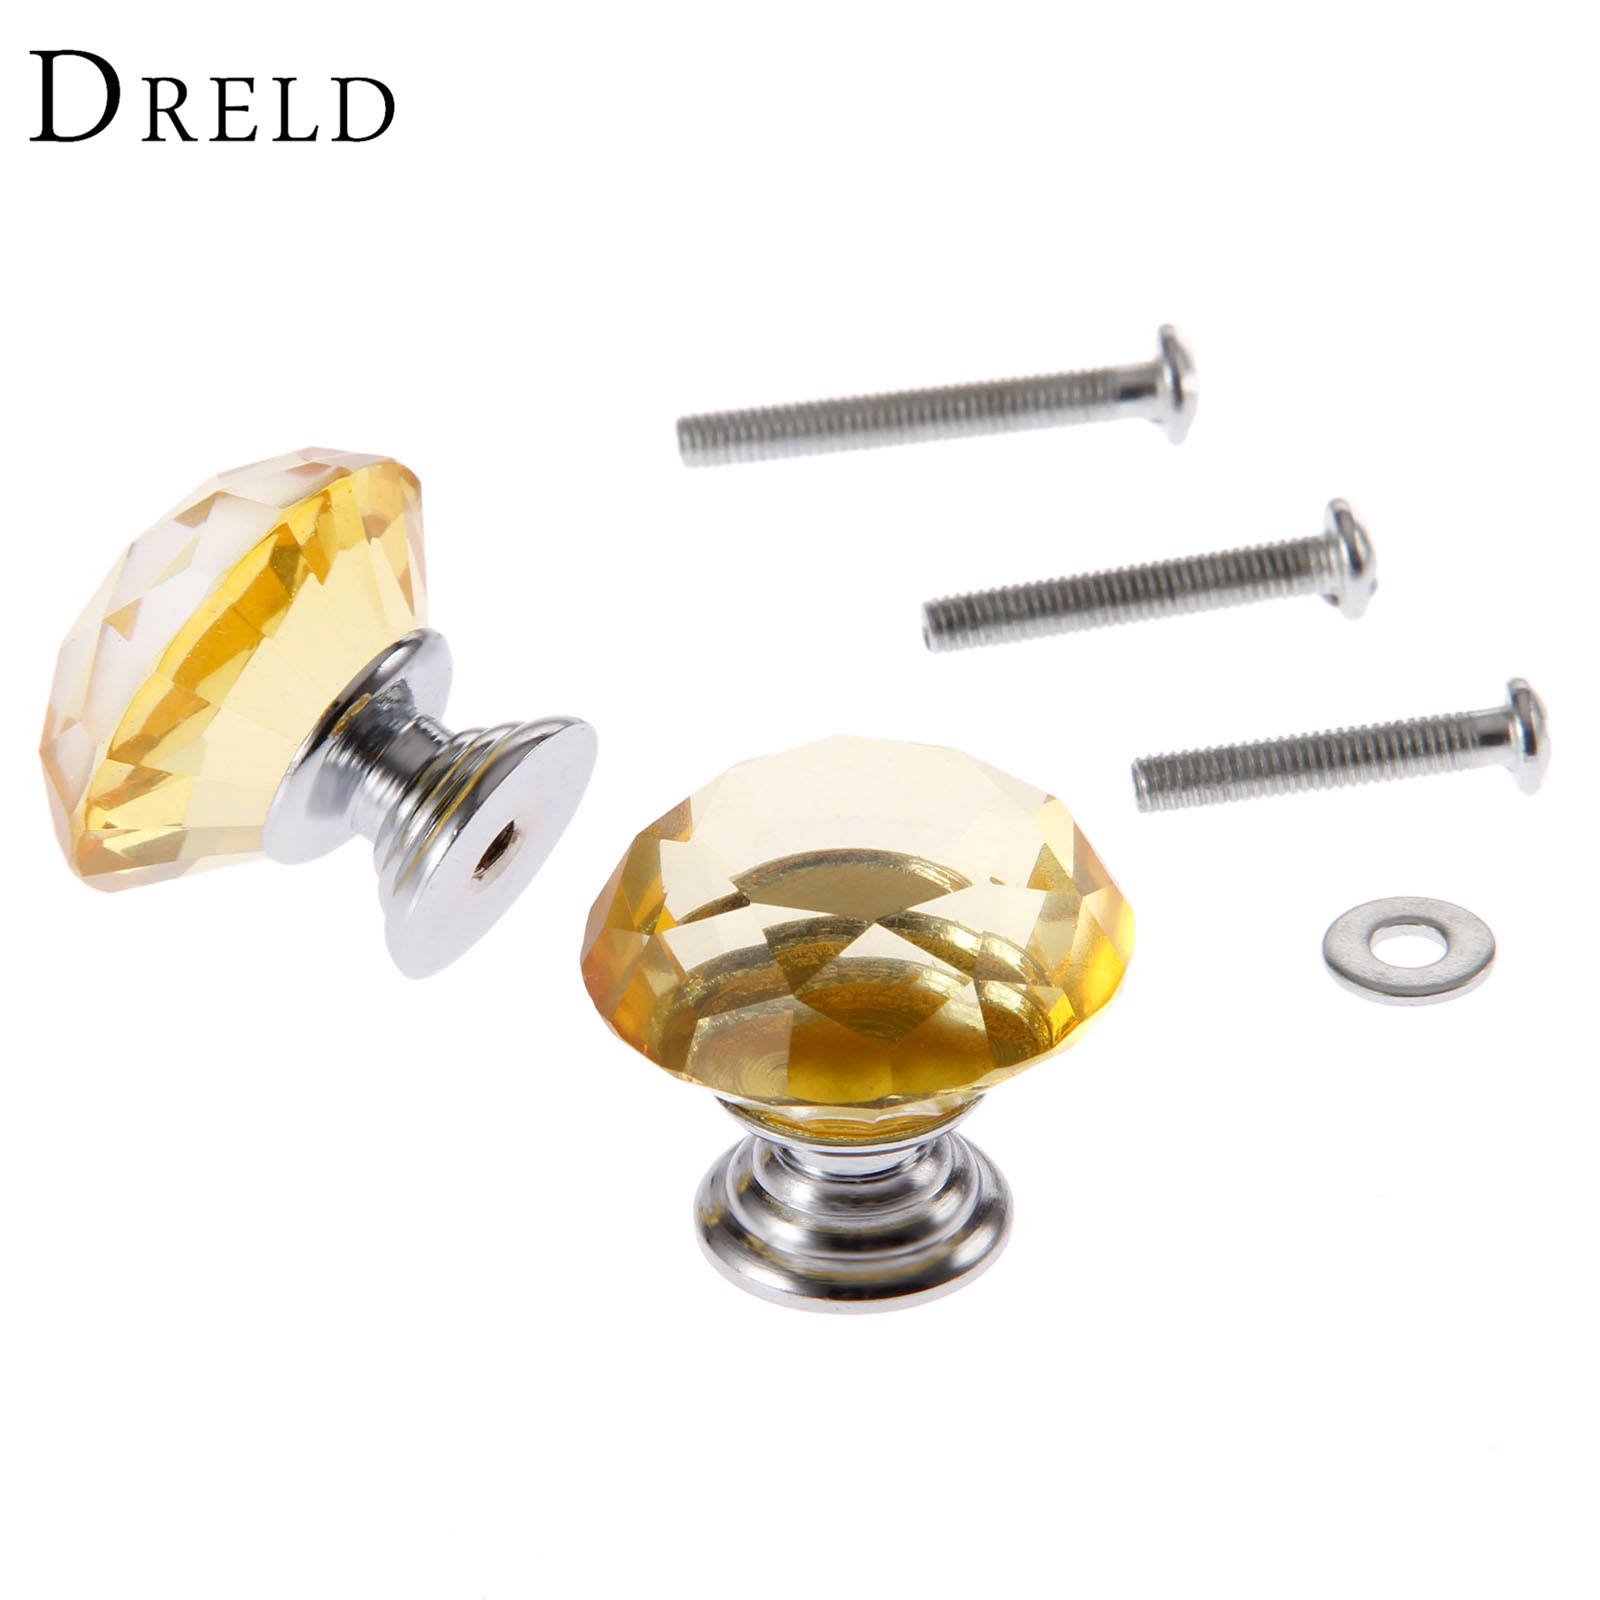 DRELD 2Pcs 30mm Diamond Crystal Drawer Pulls Glass Door Cabinet Wardrobe Pull Knobs Yellow Furniture Handles + 6Pcs Screws lhll 12x clear crystal glass door knobs drawer cabinet furniture pull handles